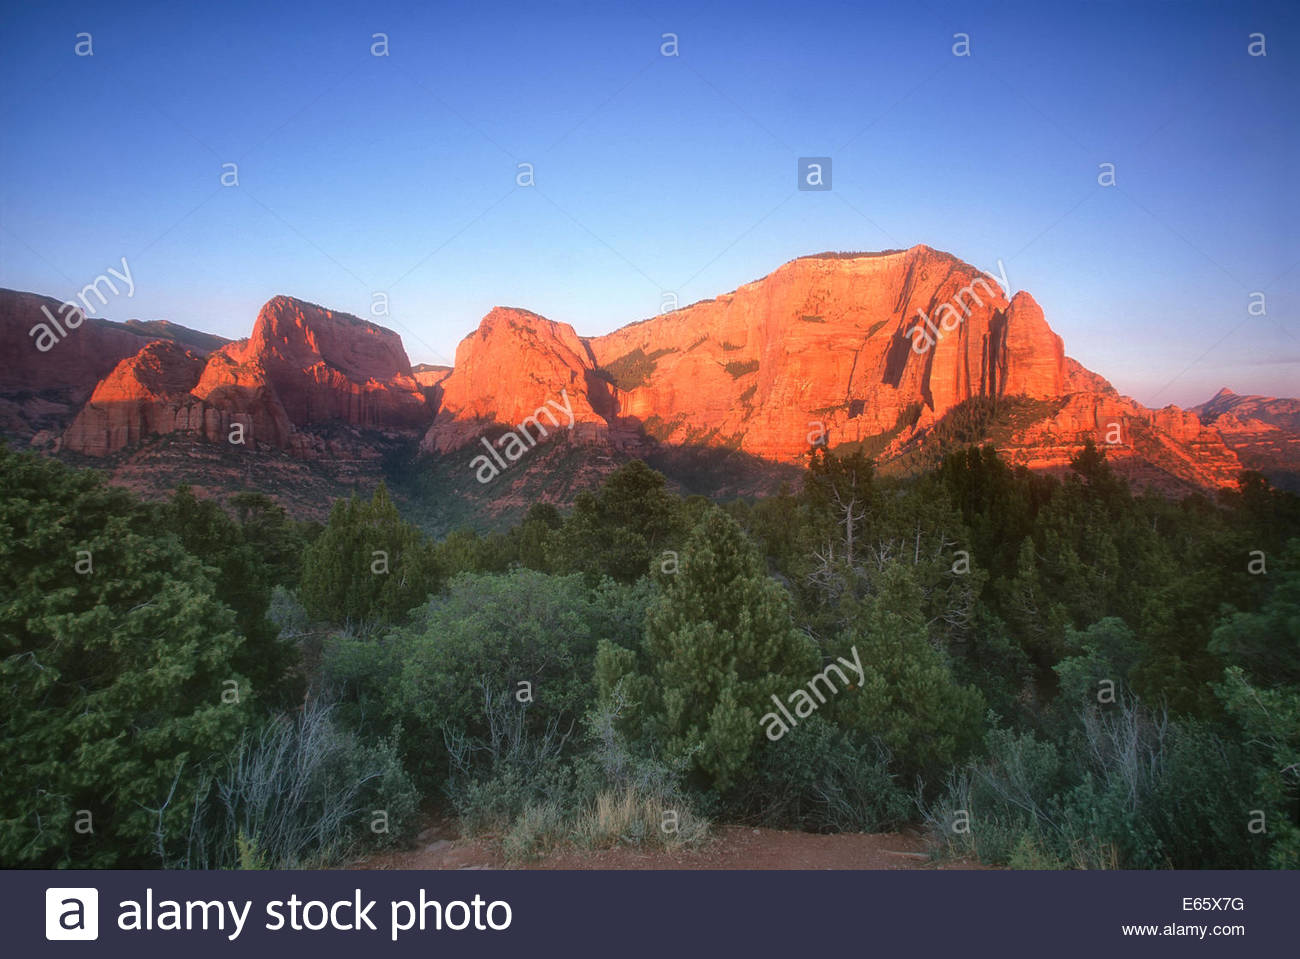 The Kolob Canyons, also called the Kolob Fingers, are turned red at sunset in Zion National Park in Utah. - Stock Image